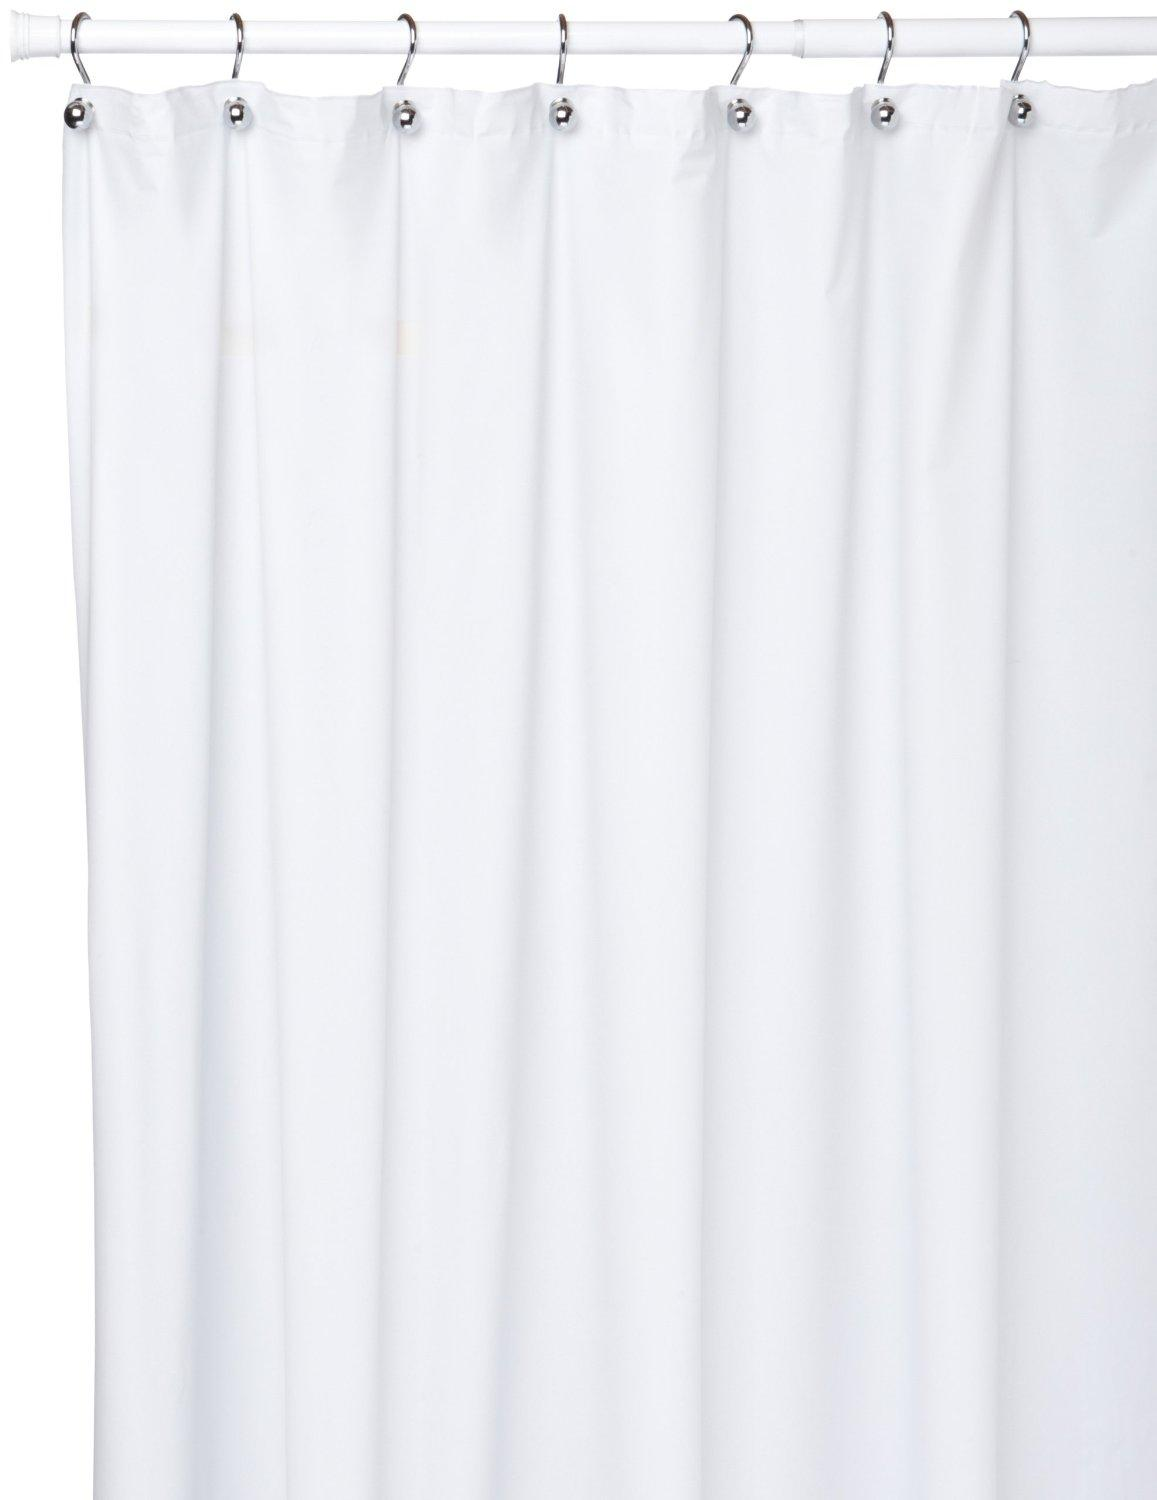 Extra Long 10 Gauge Vinyl Shower Curtain Liner White ...